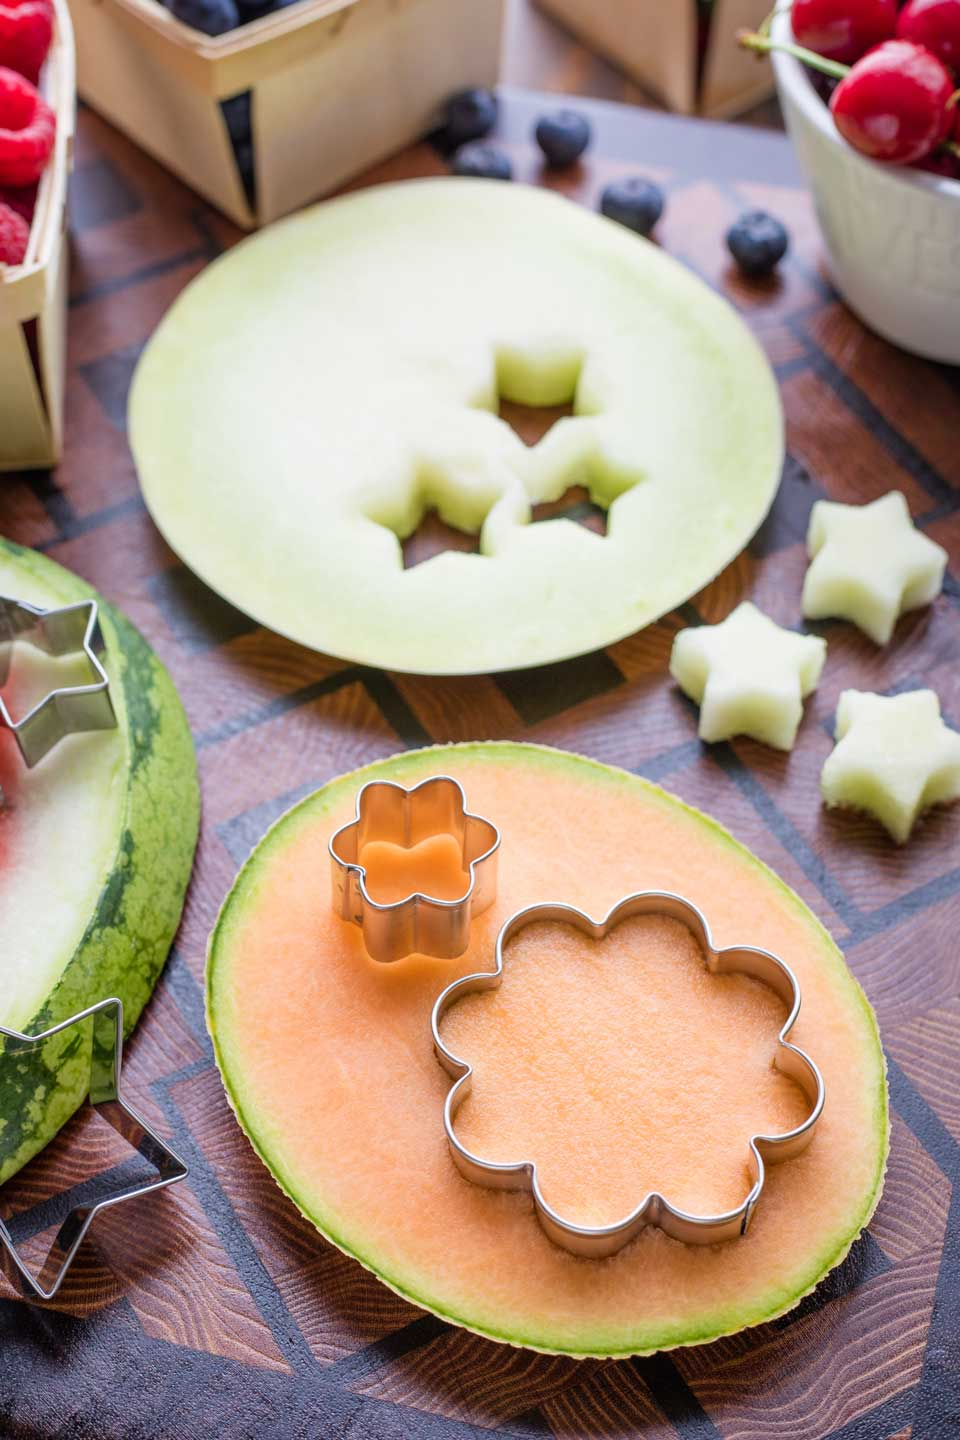 a cantaloupe slice laying flat on a cutting board with flower cutters cutting out shapes, and with other melons and cutters in the background